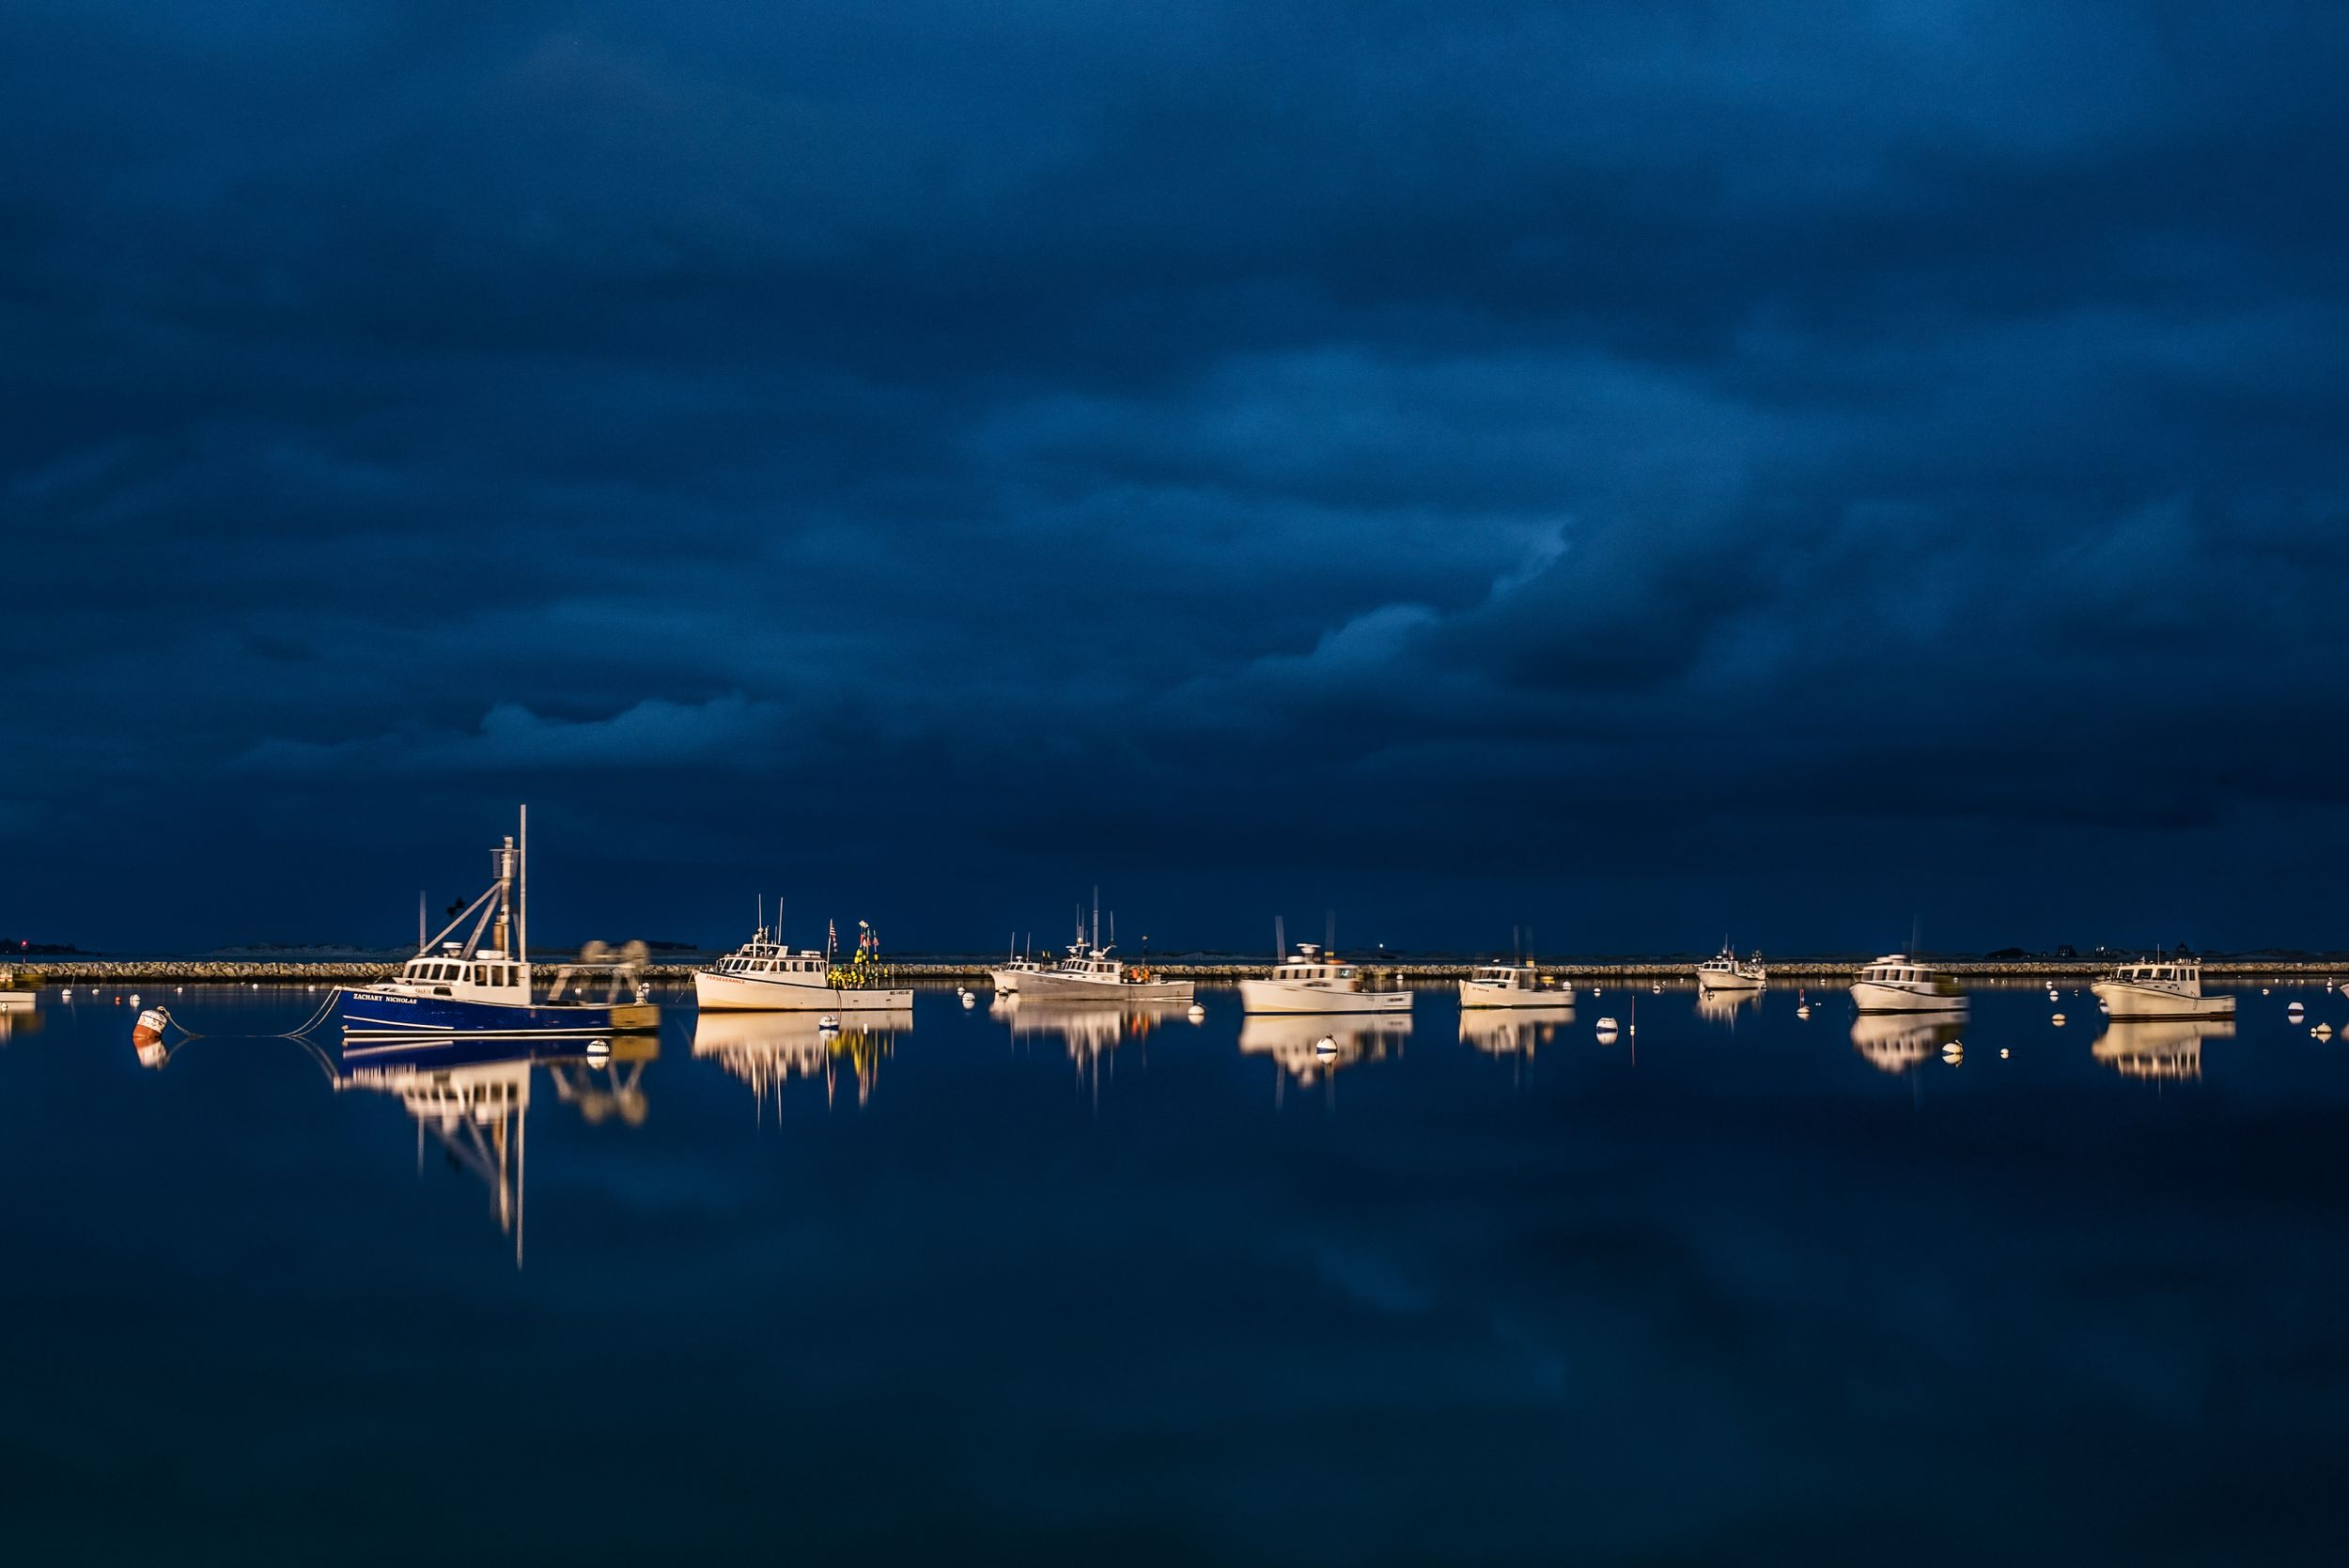 Night landscape of Plymouth Harbor filled with boats